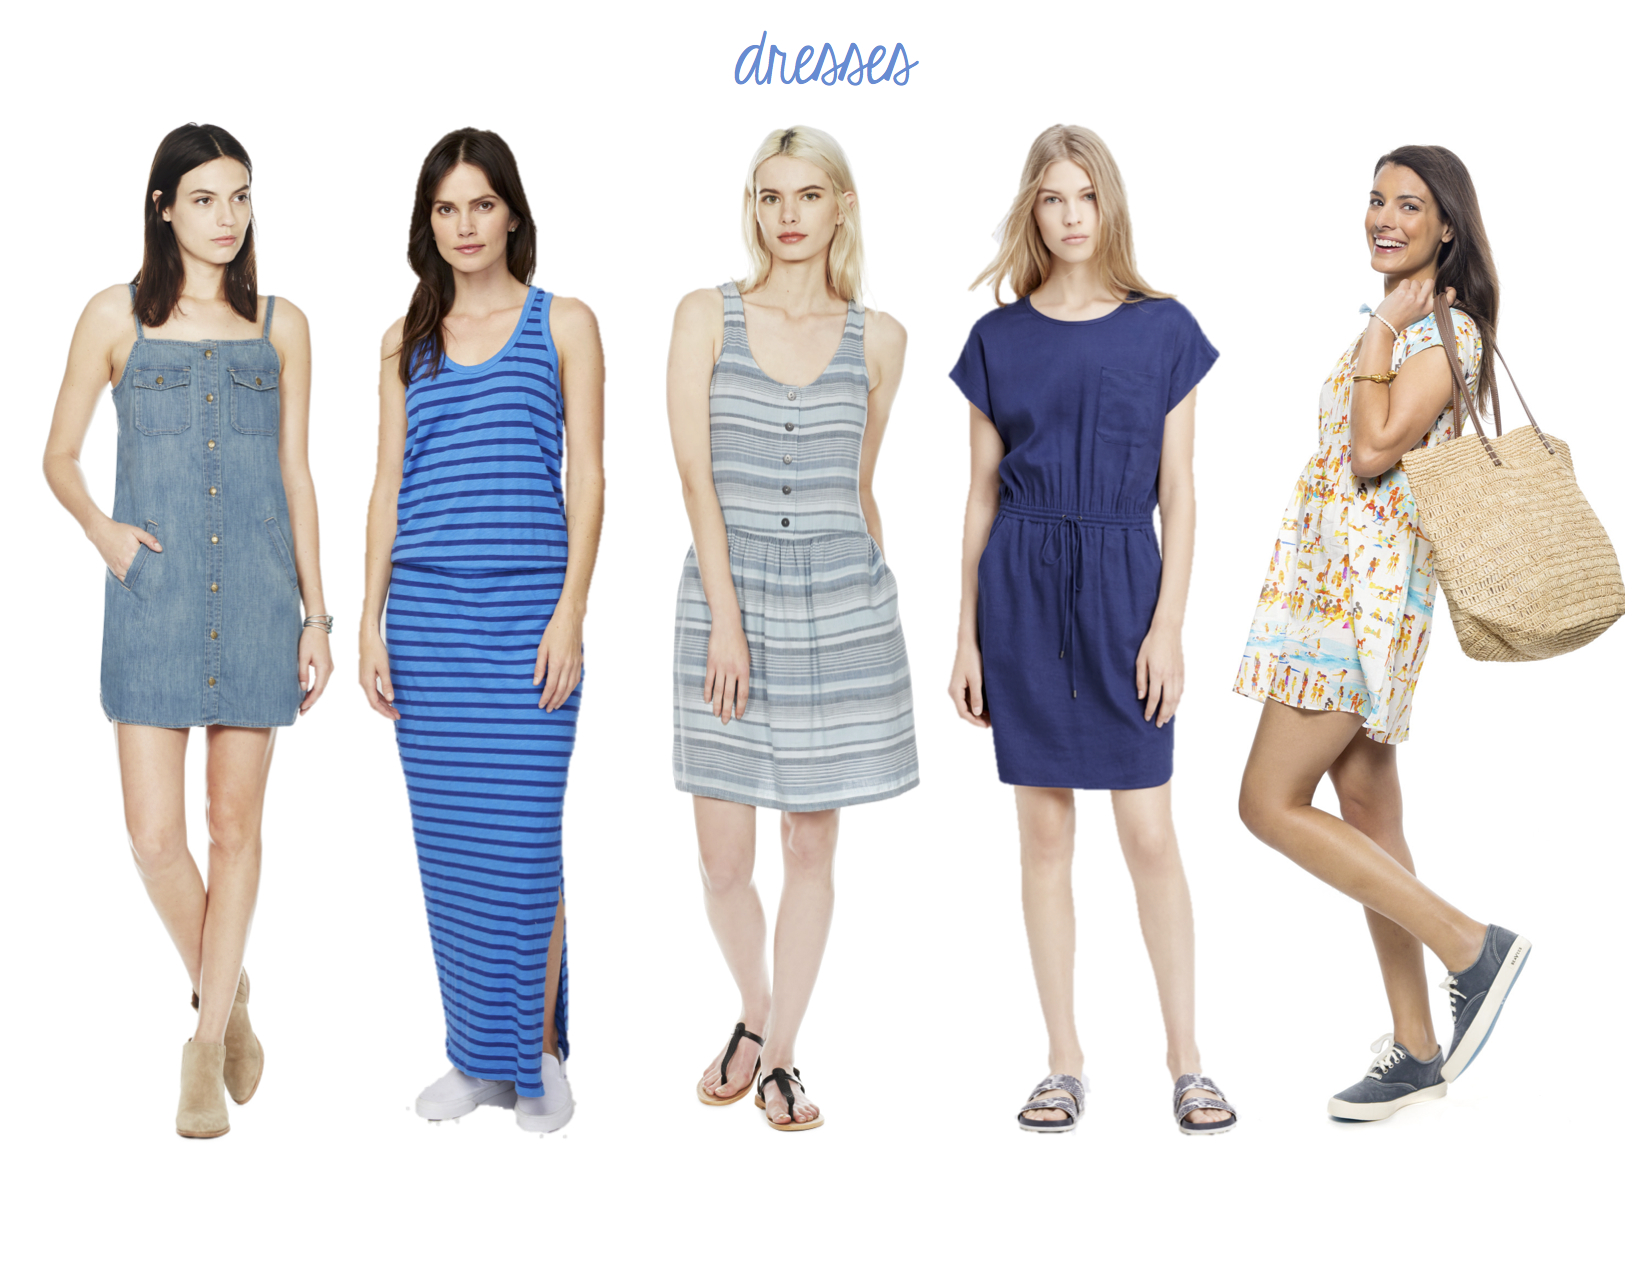 Current/Elliott Strappy Dress. Sundry Stripe Maxi Dress, Current/Elliott Indio Dress, Vince Stretch Linen Drawstring Dress, G. Kero Adele Dress